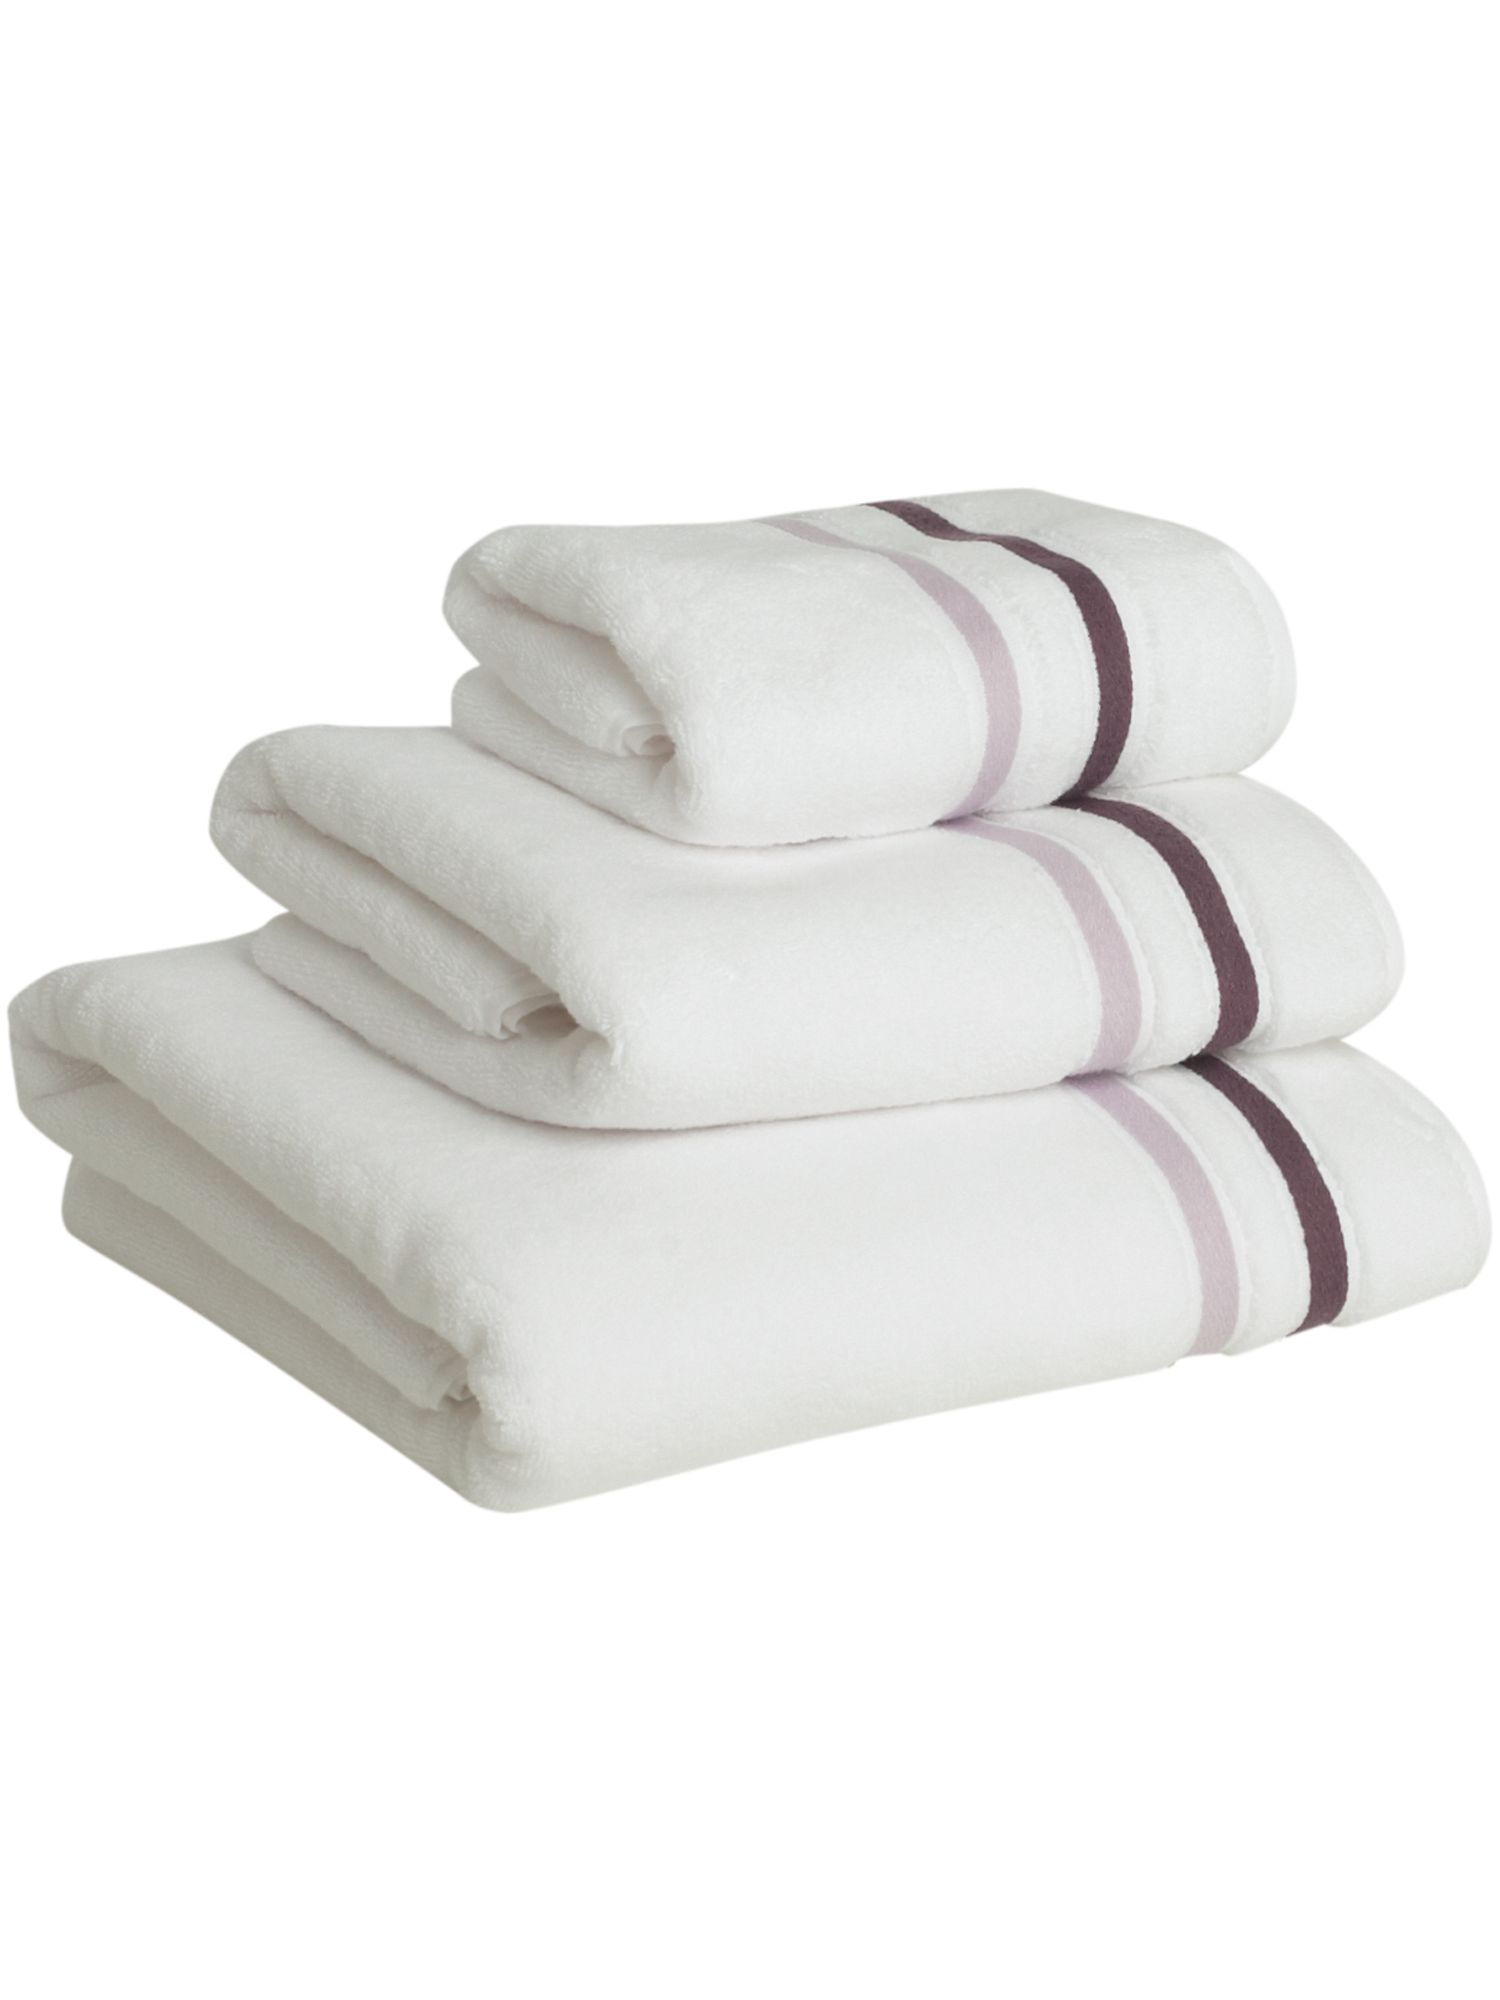 Weft insert towels in heather